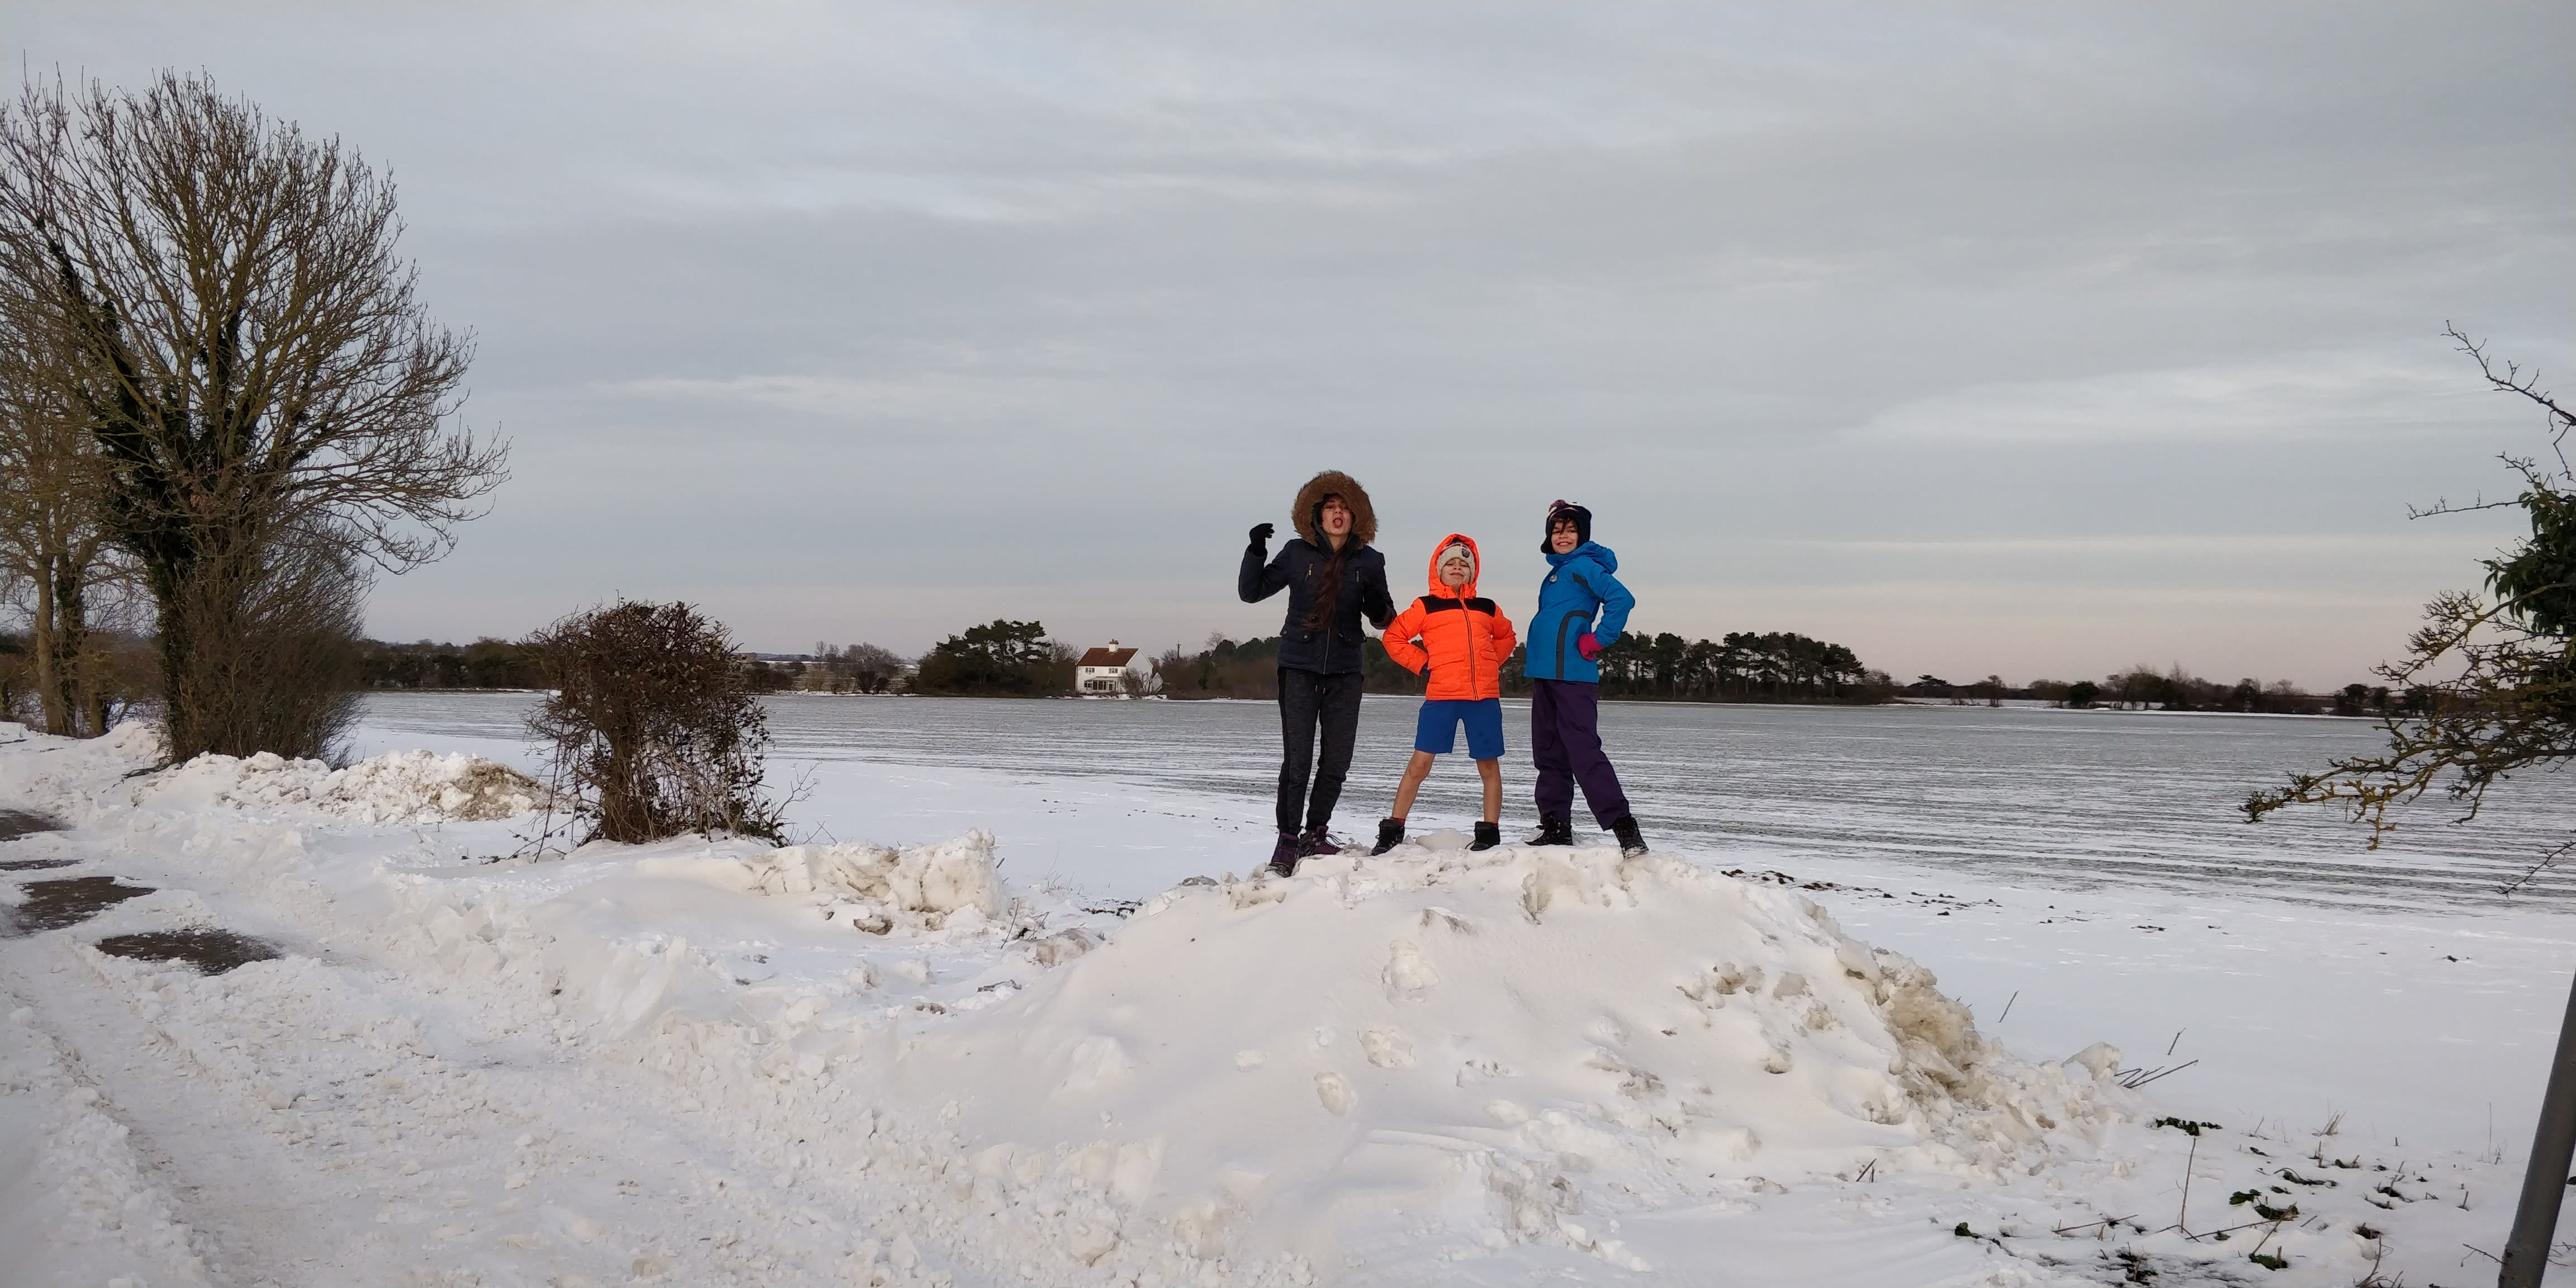 Our children ontop of a pile of snow